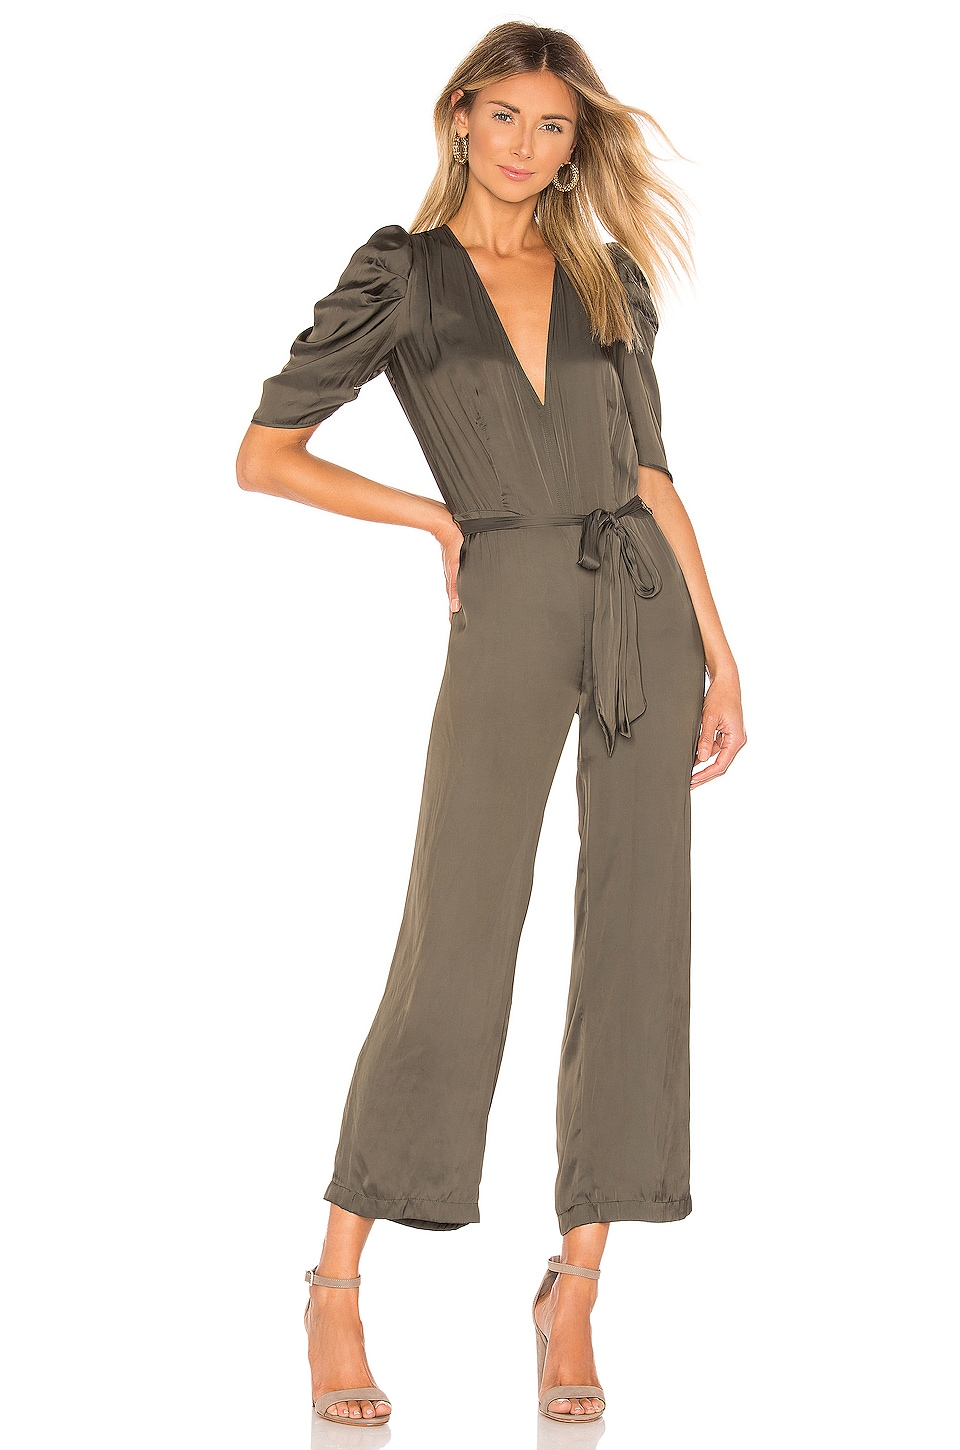 Blue Life Carynn Jumpsuit in Army